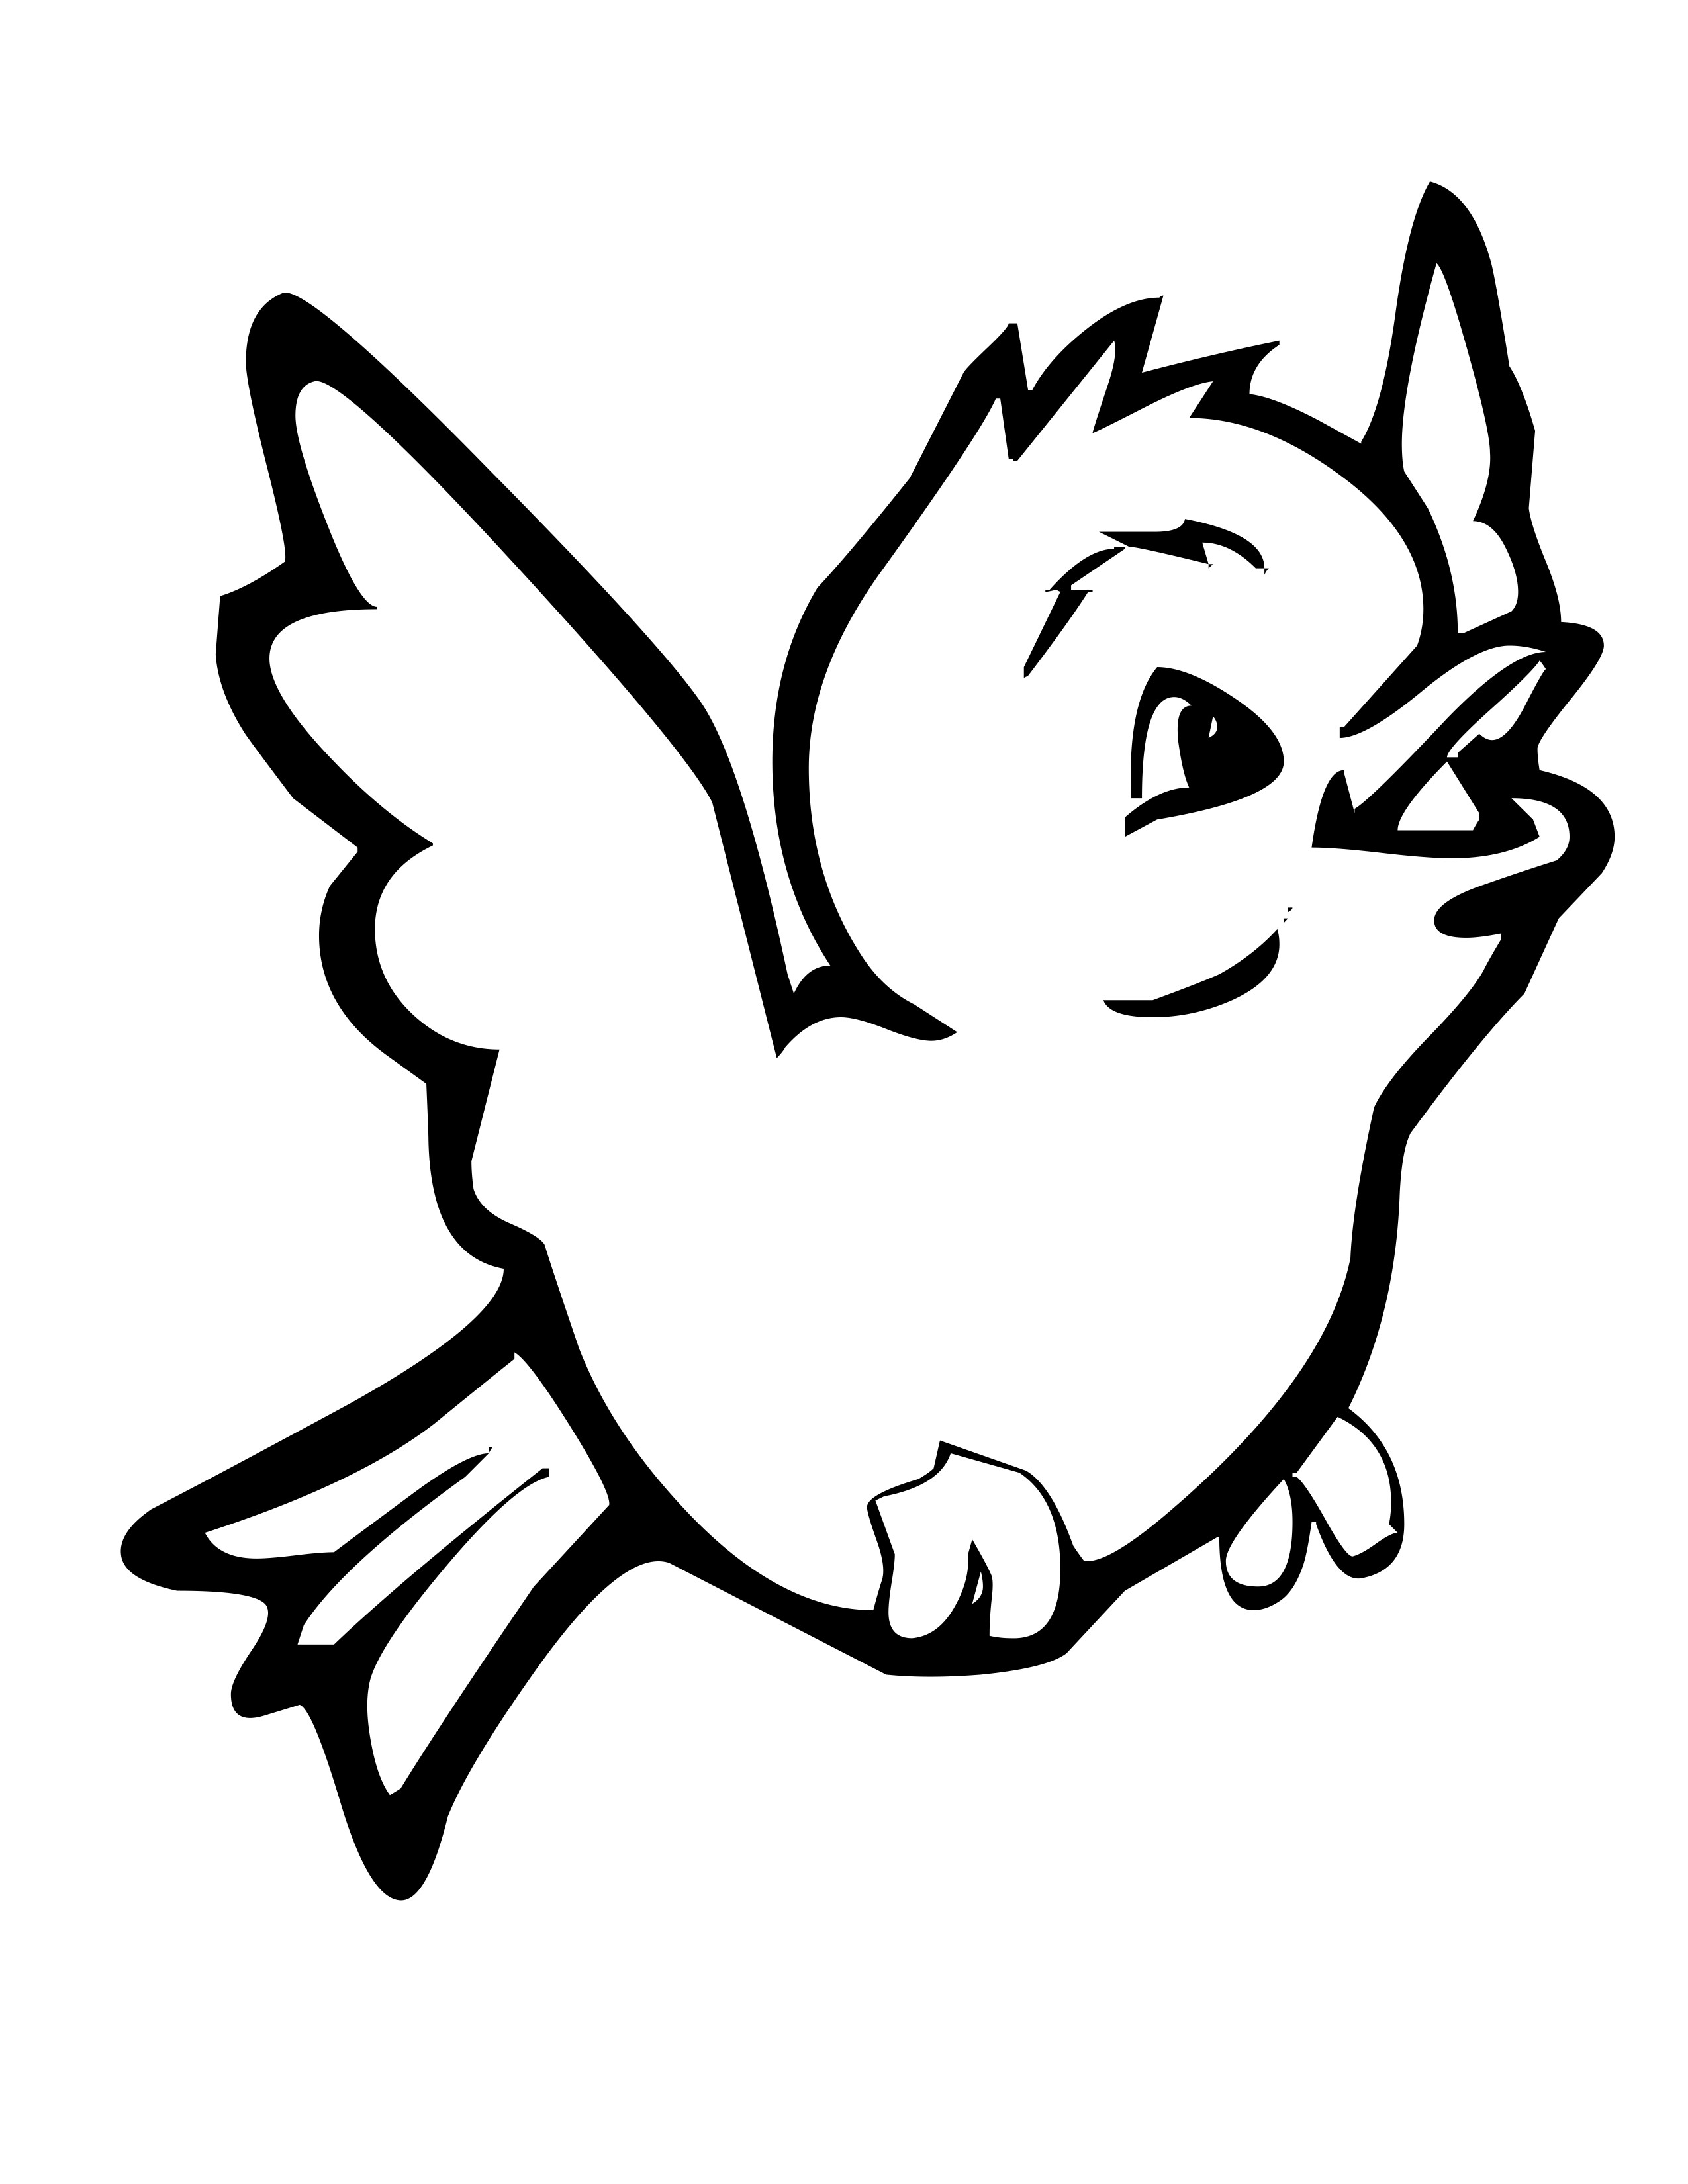 free bird coloring pages bird coloring pages coloring pages bird free